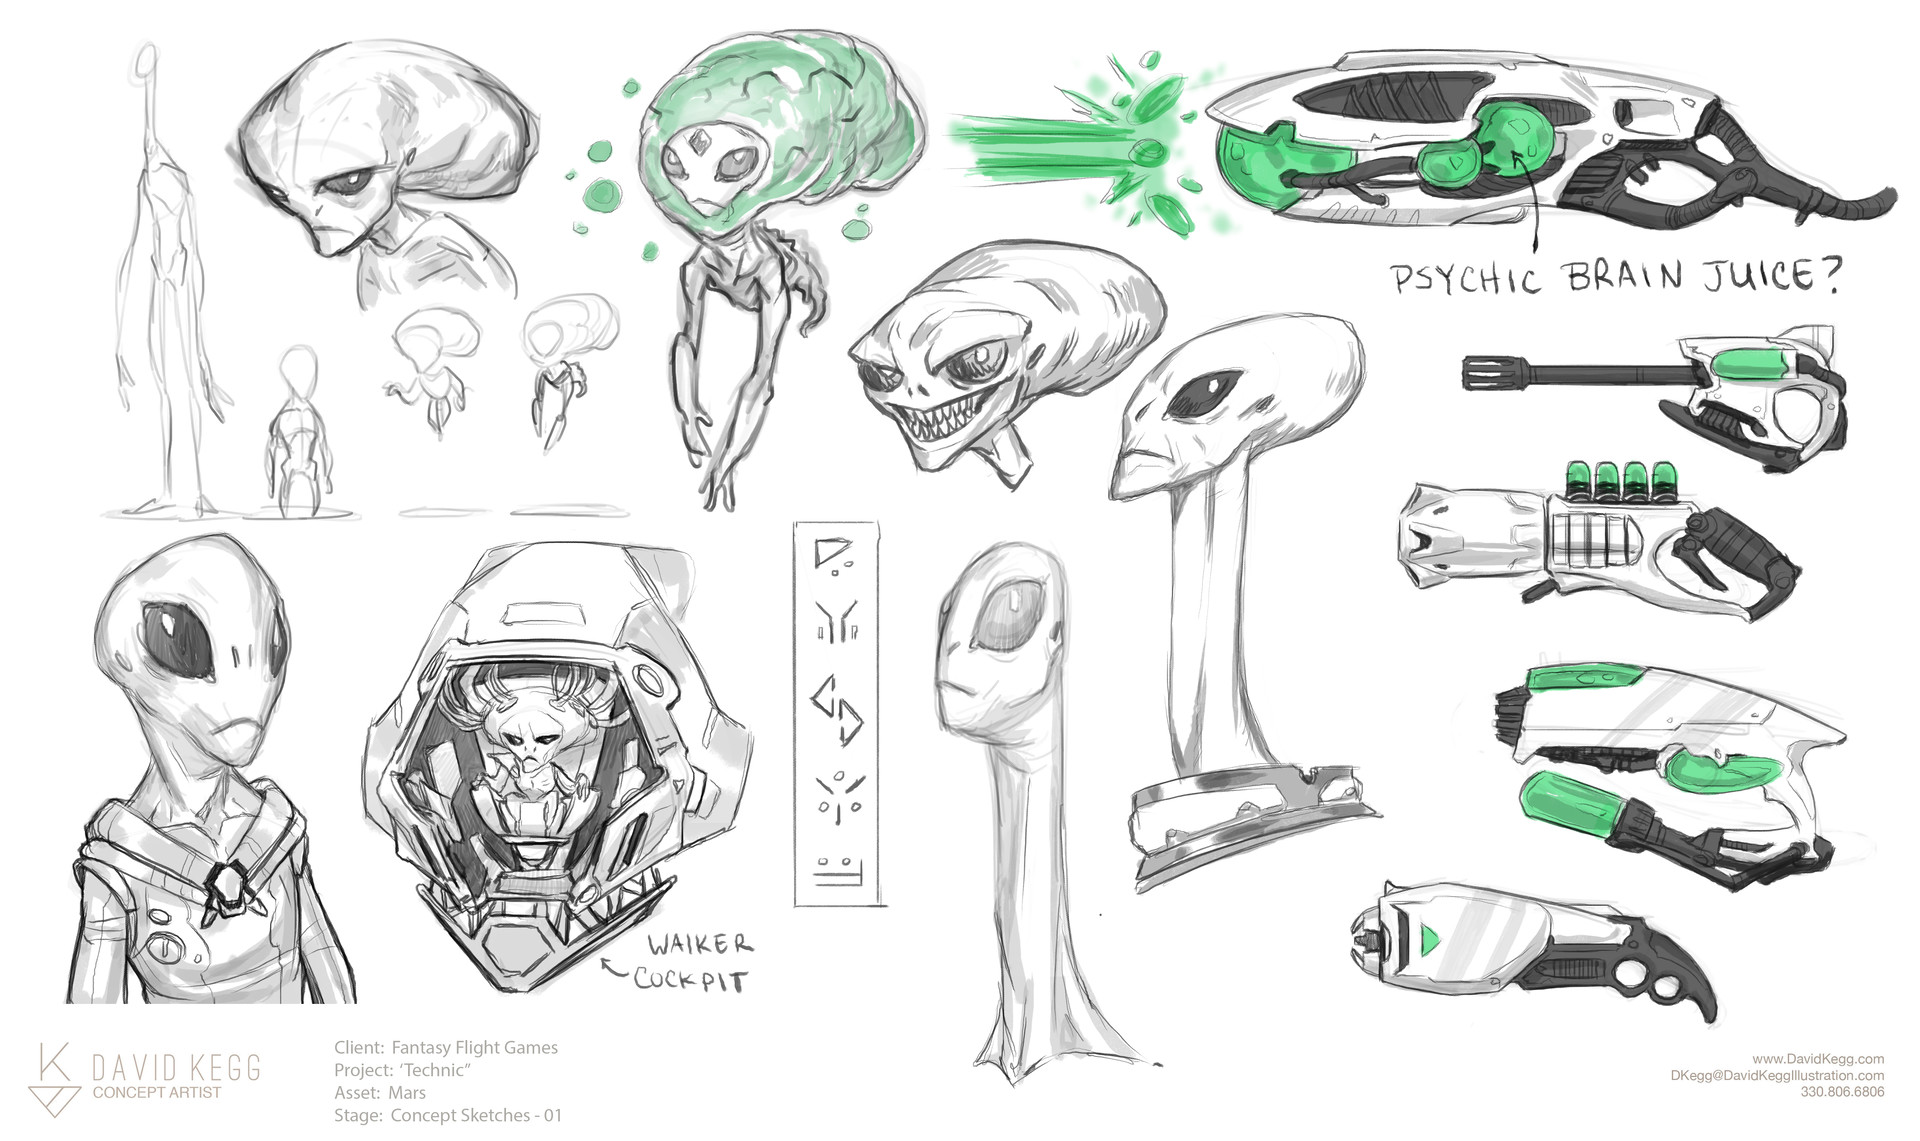 David kegg kegg ffgtechnic mars conceptsketches 01